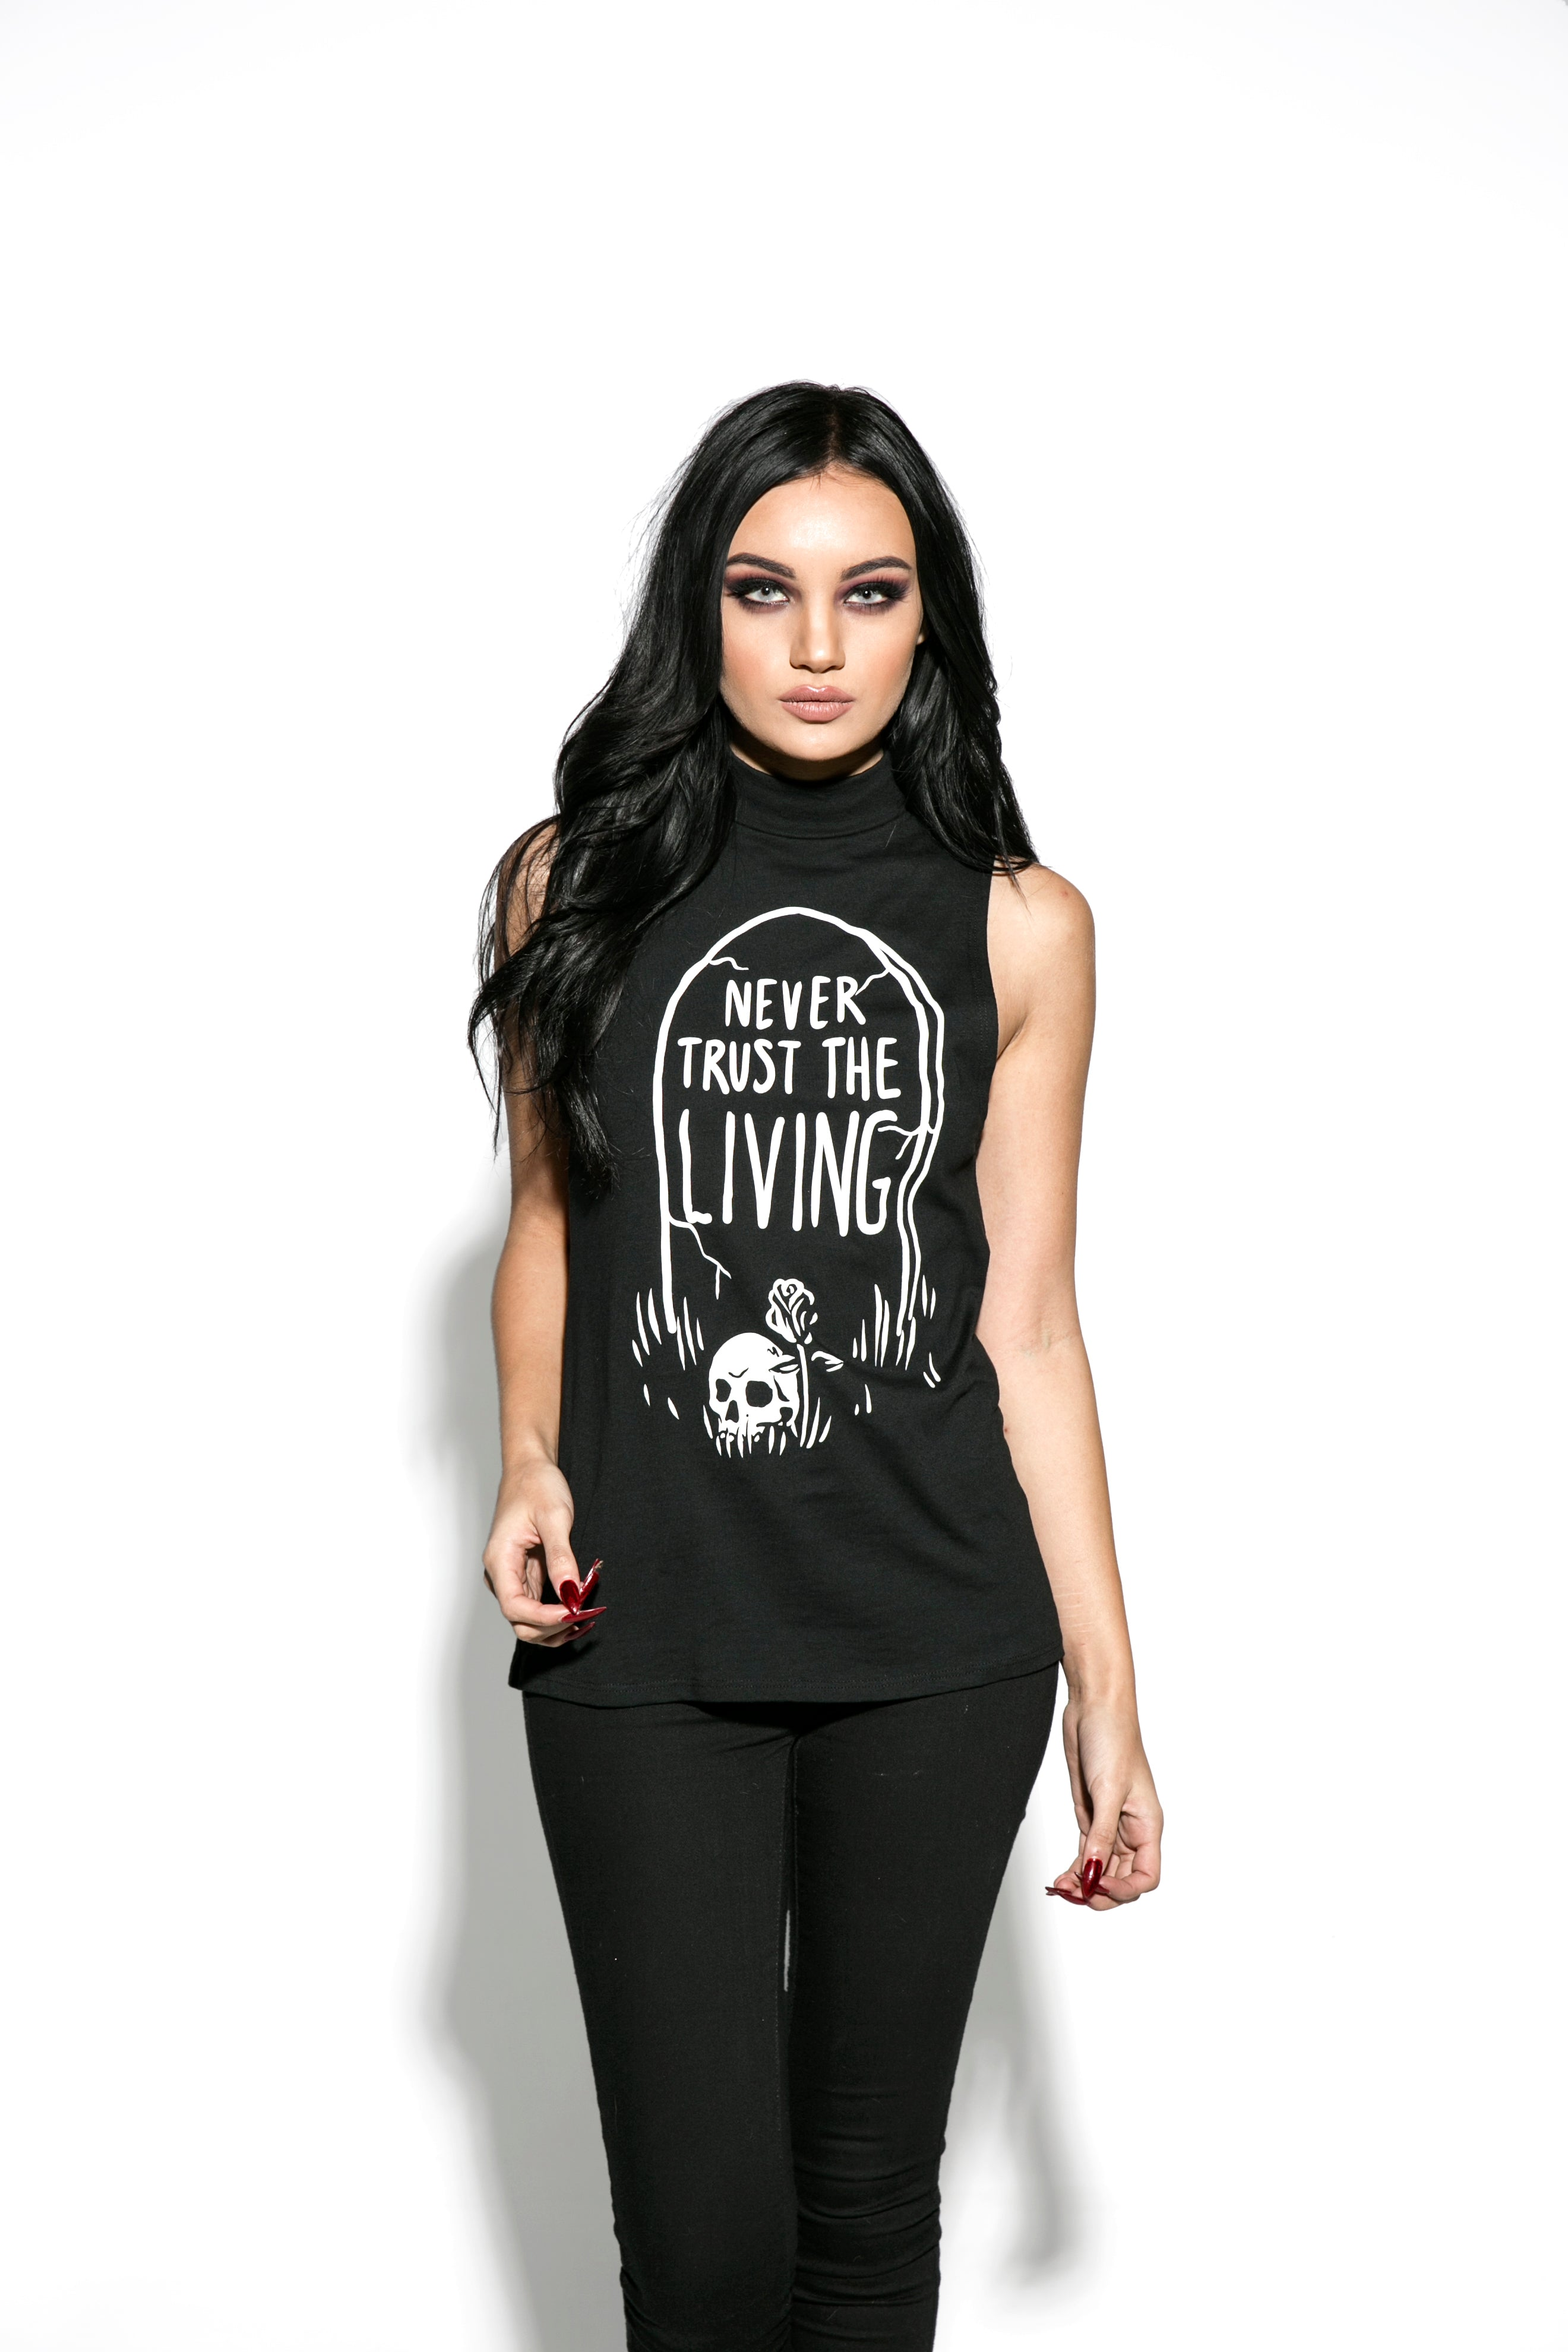 Never Trust The Living - Sleeveless High Neck